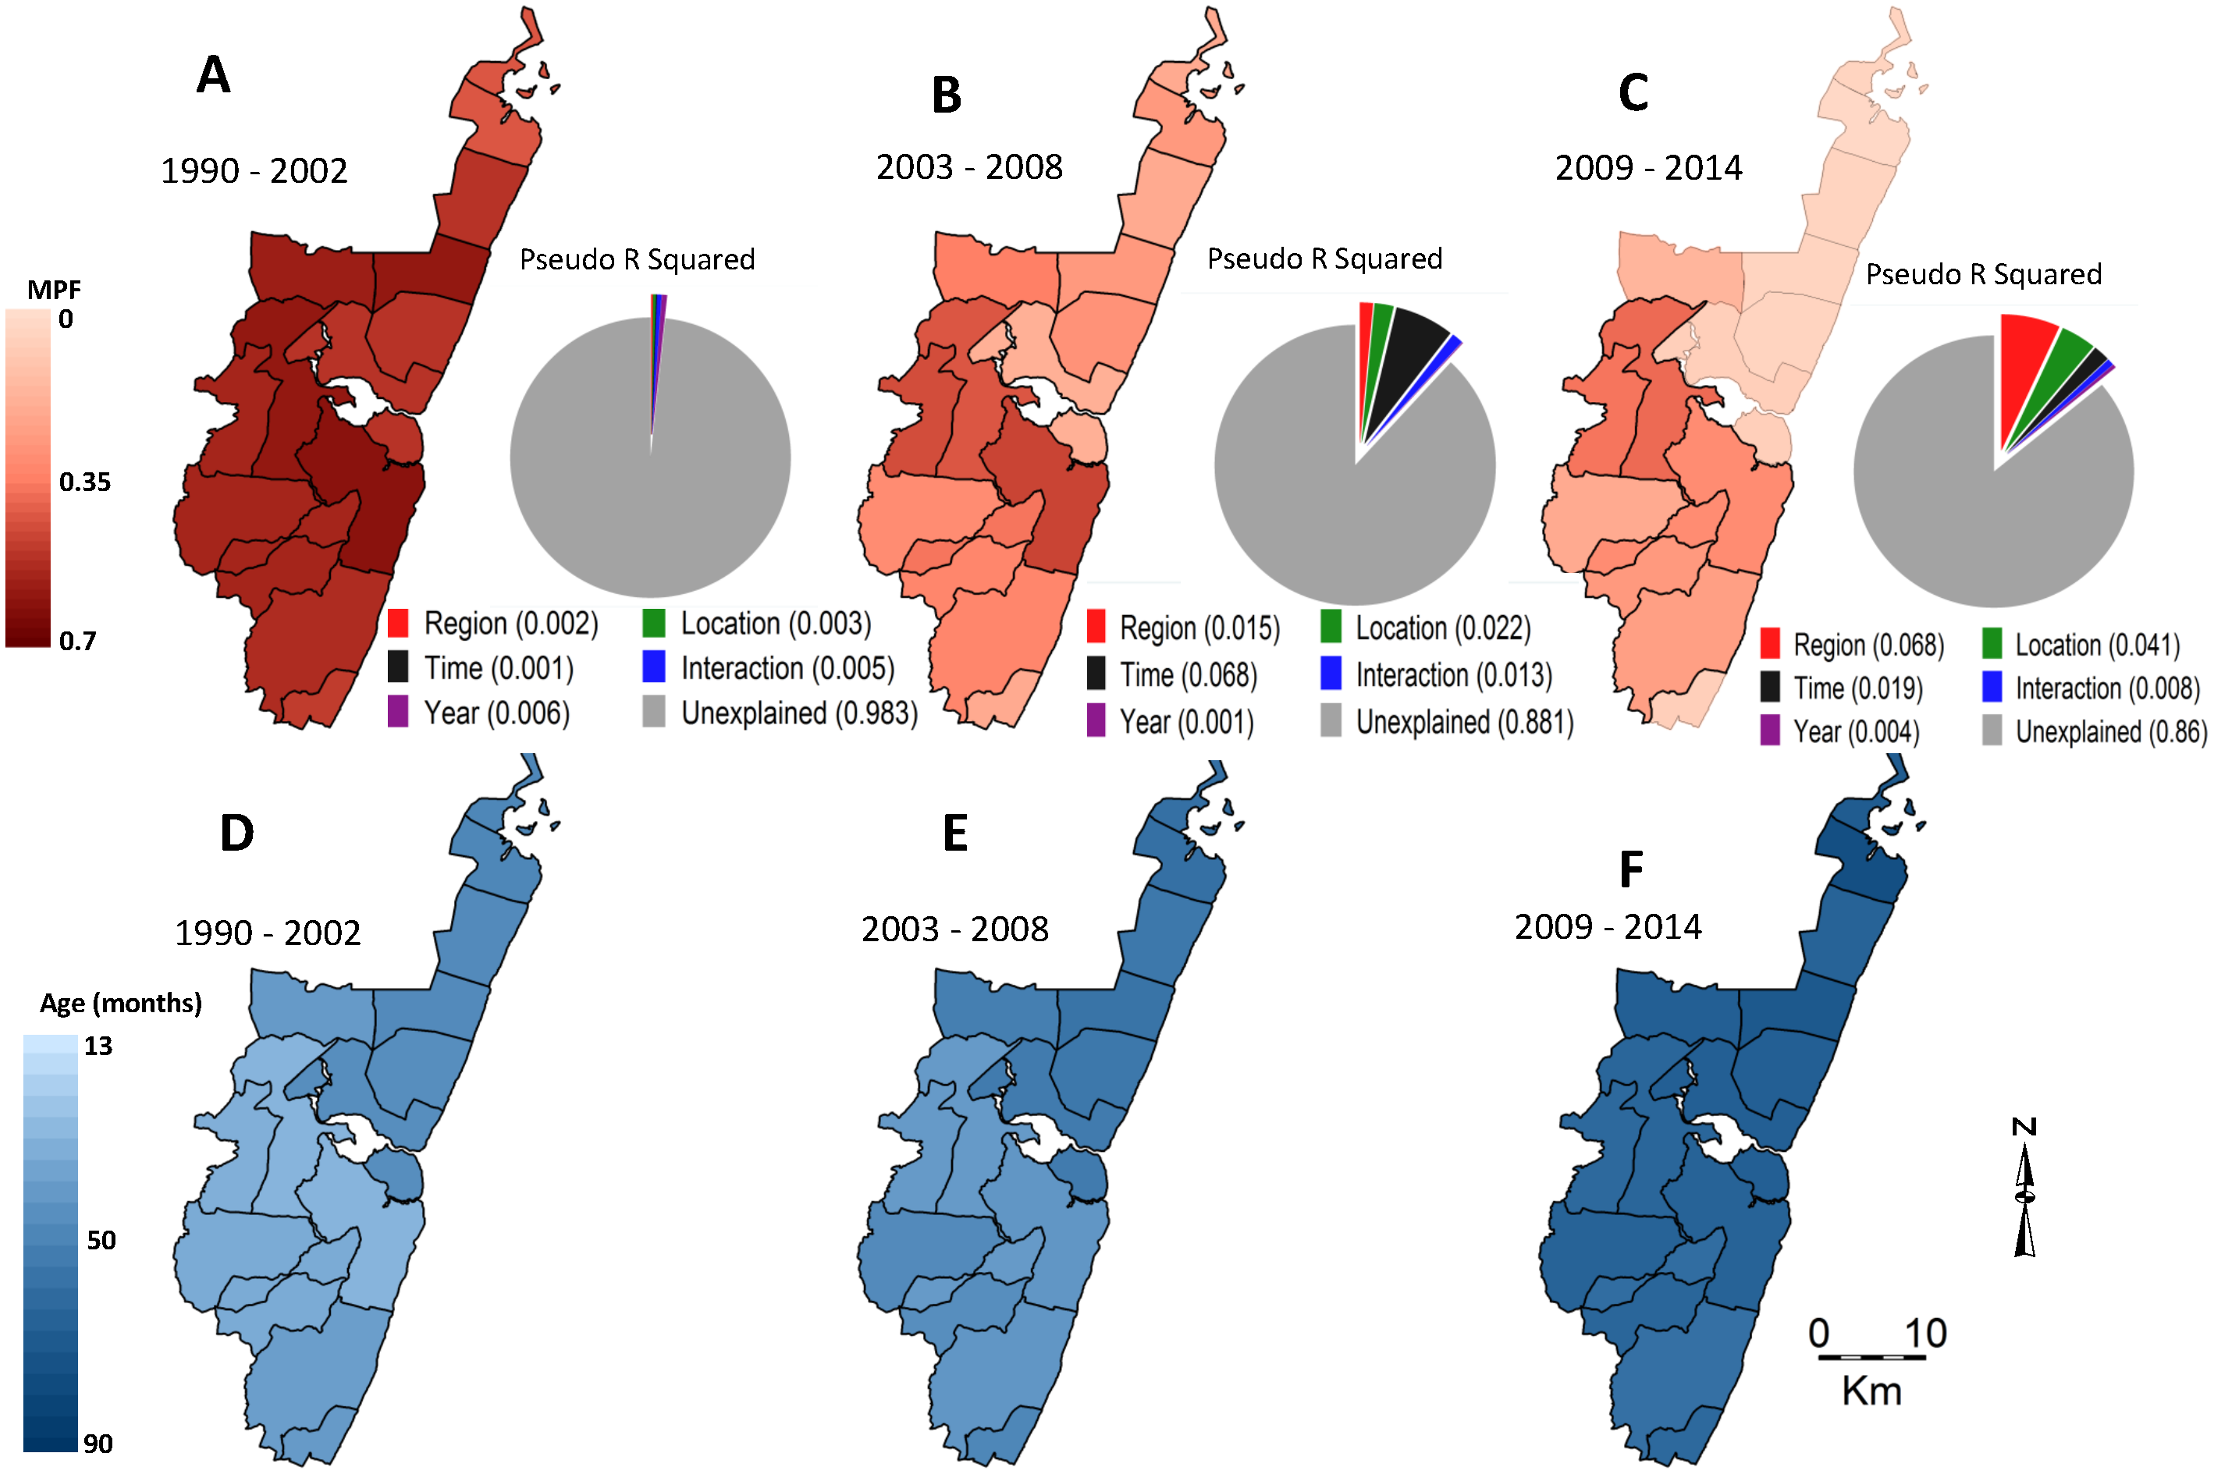 Geographical distribution of MPF and age of slide-positive acute admissions over time.